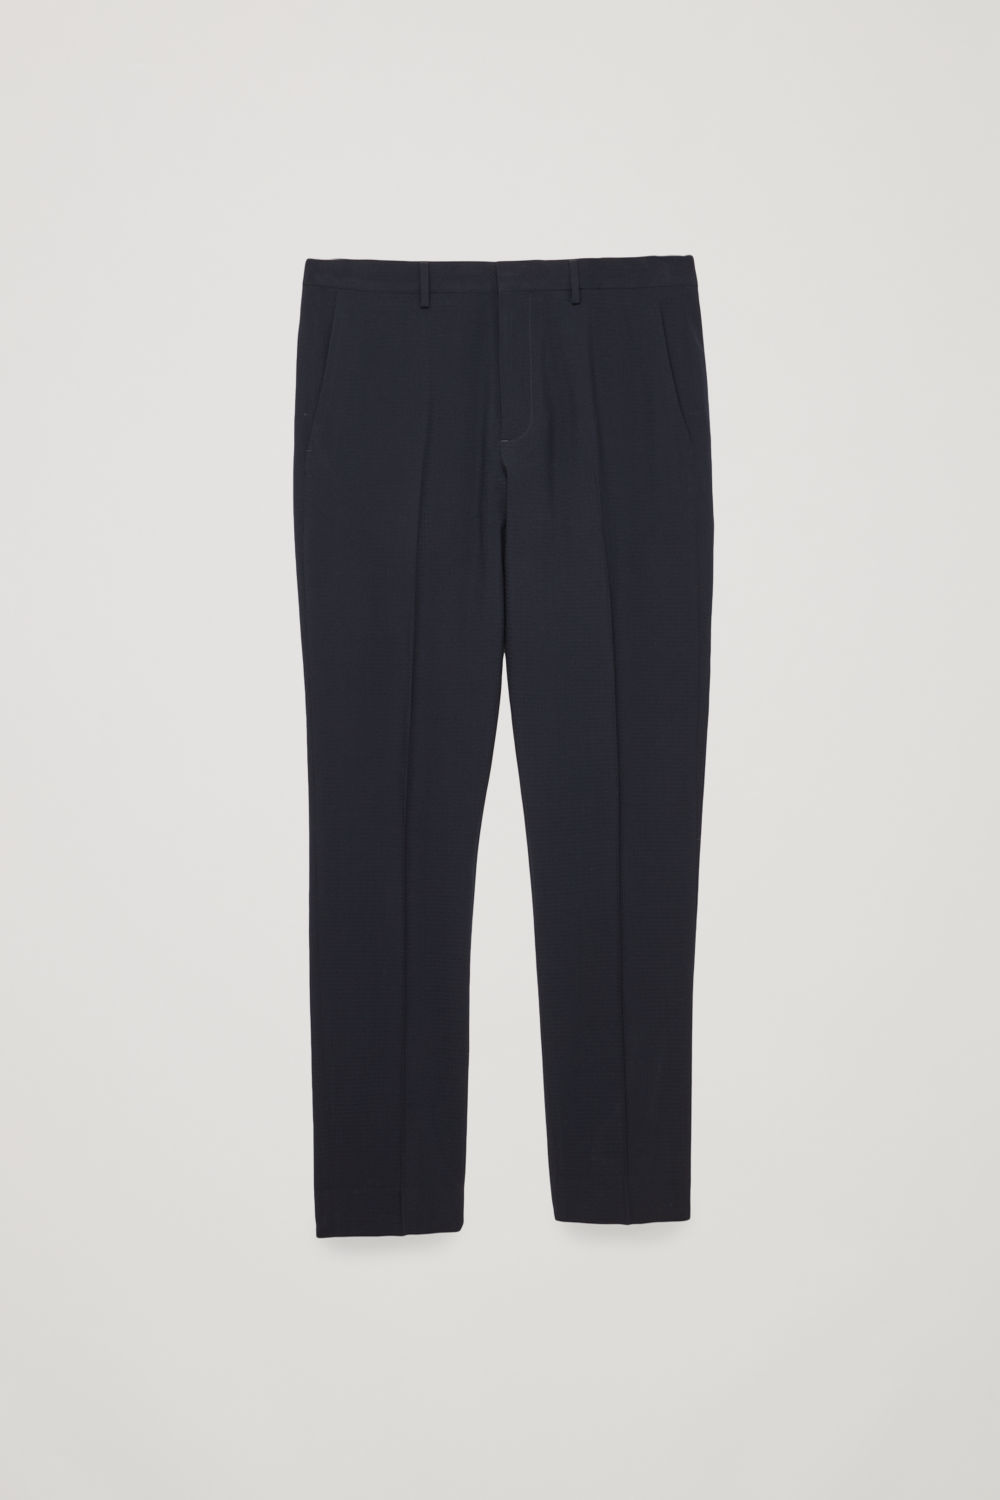 WOOL SEERSUCKER TROUSERS